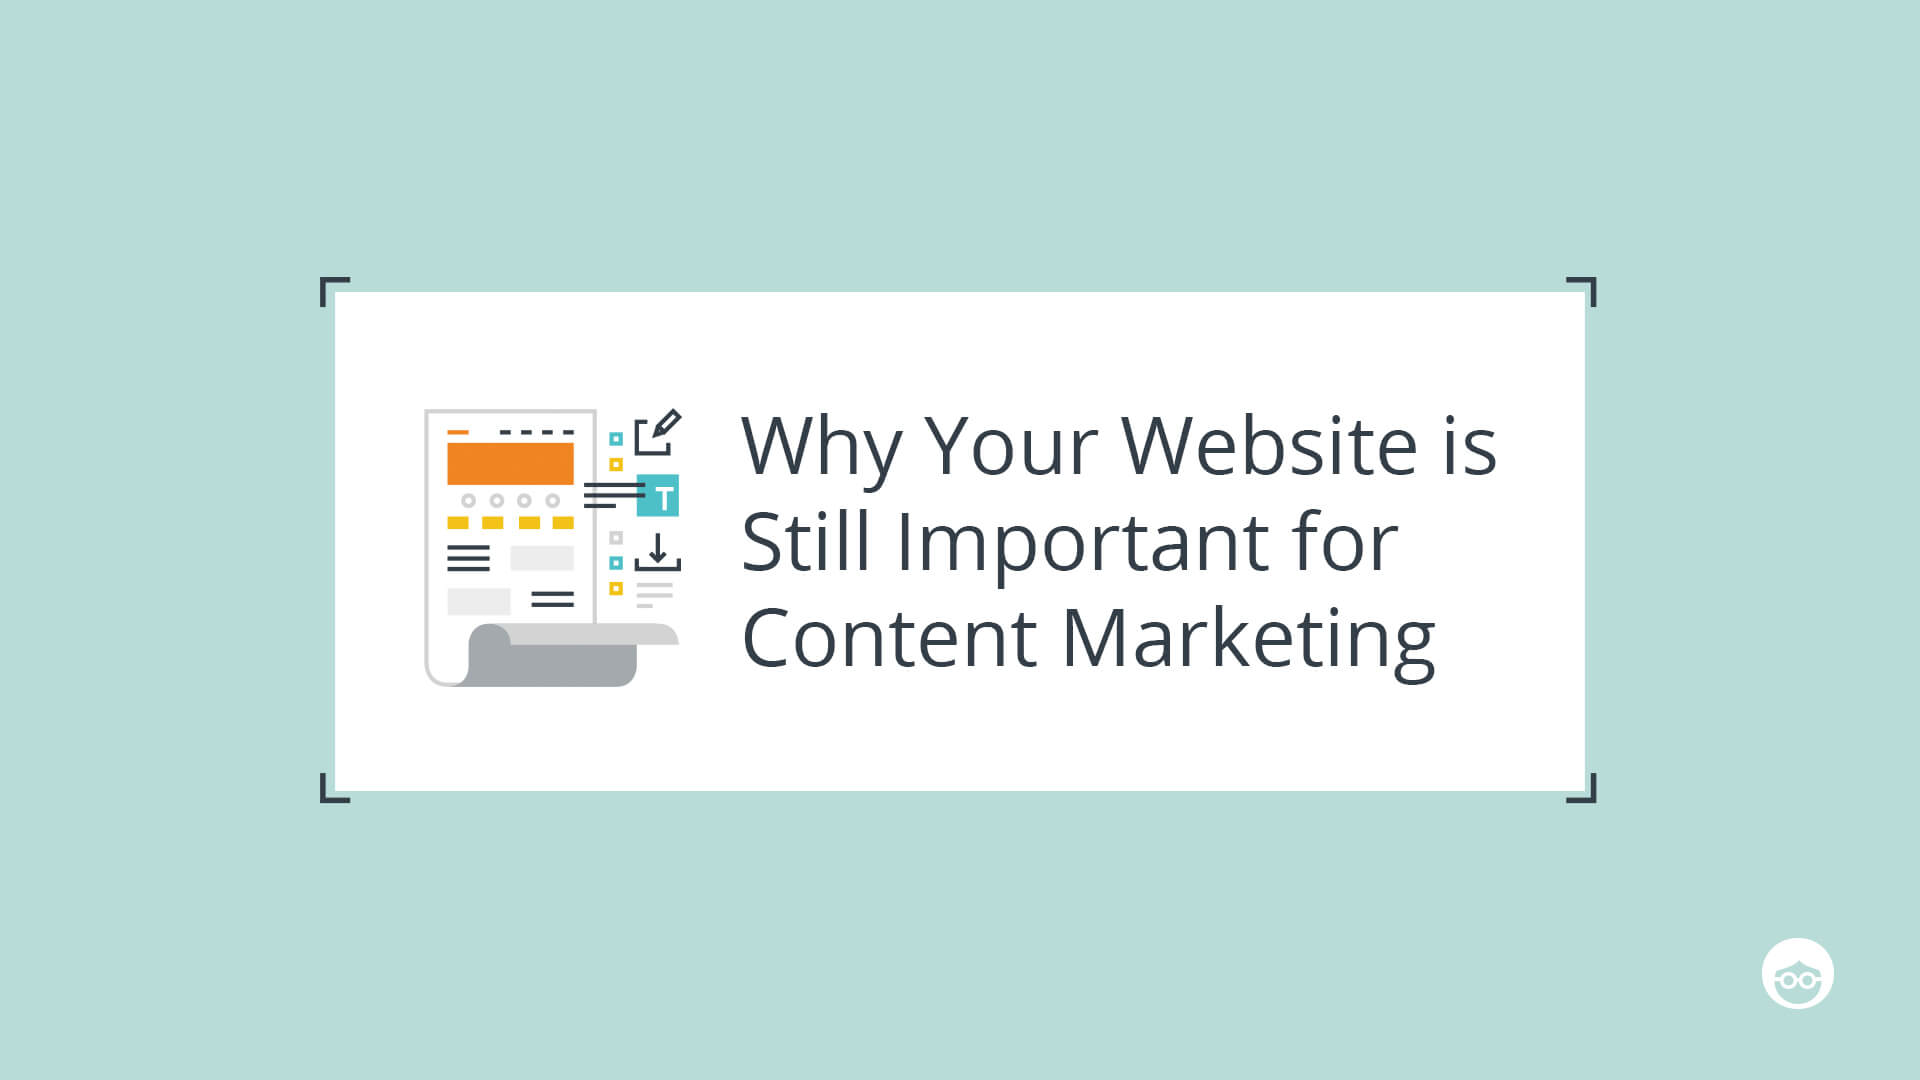 Website still important for content marketing